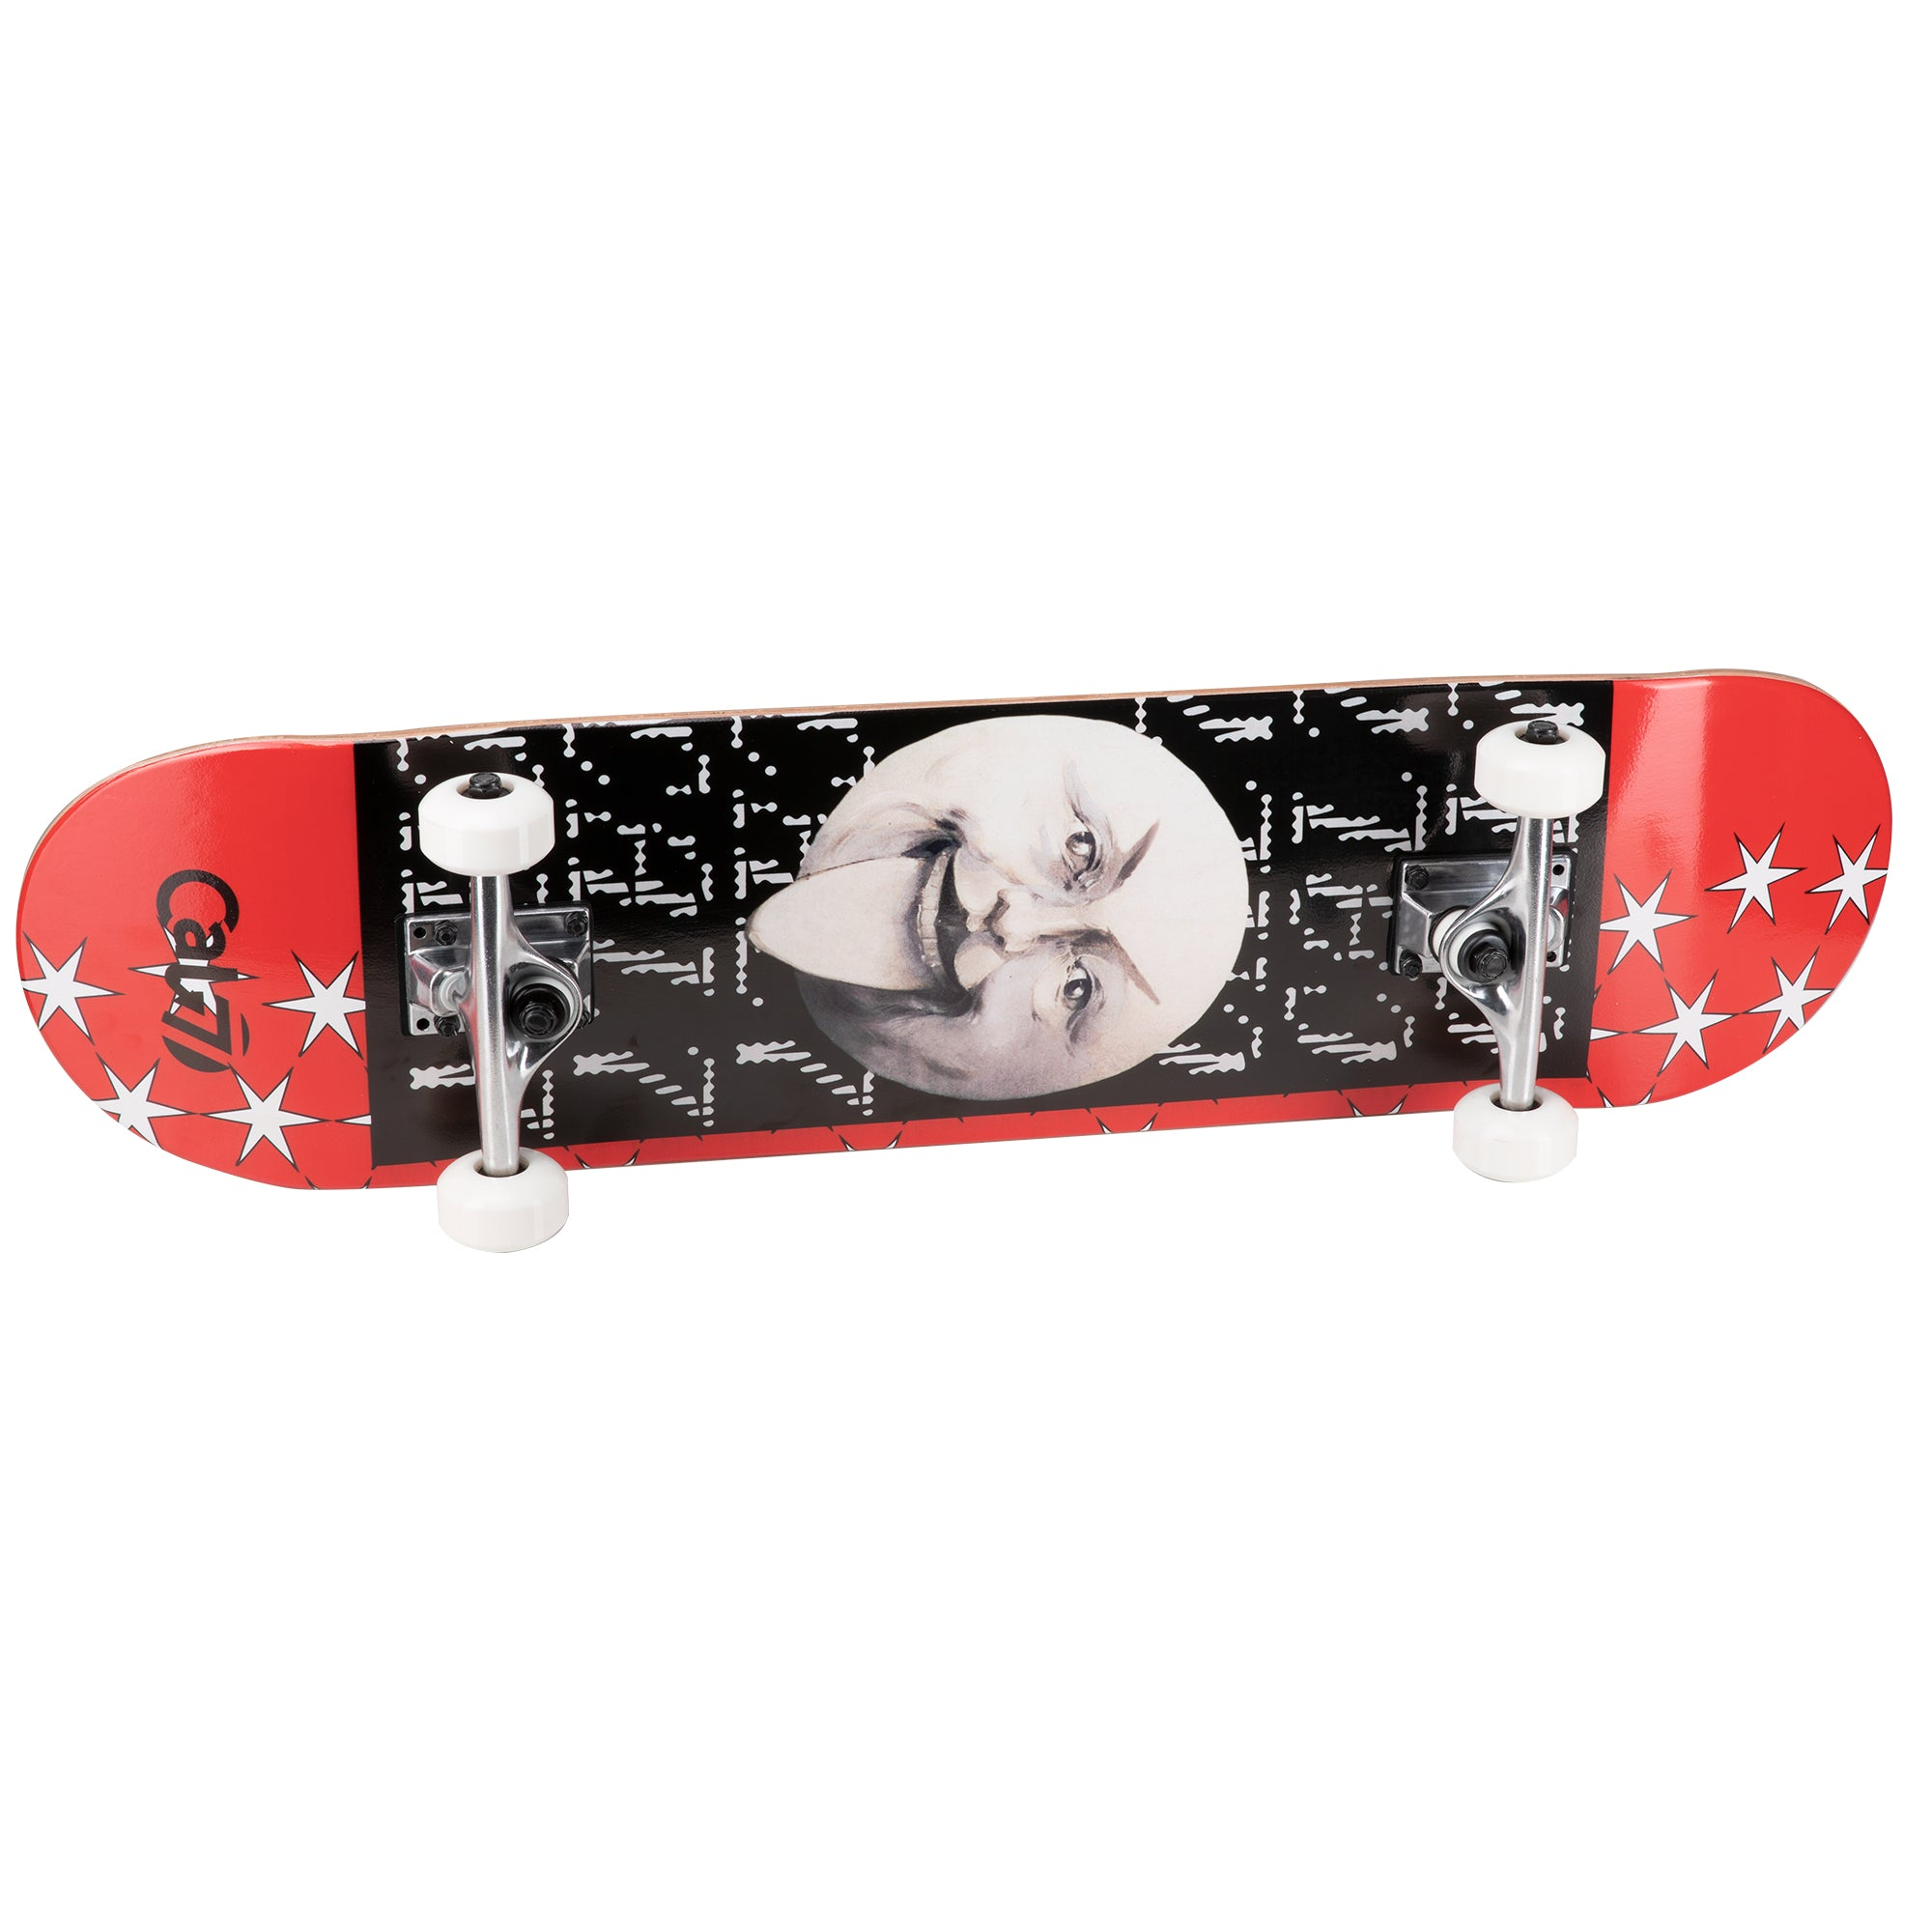 Cal 7 complete 8.0 inch Dogma skateboard with black and red graphics